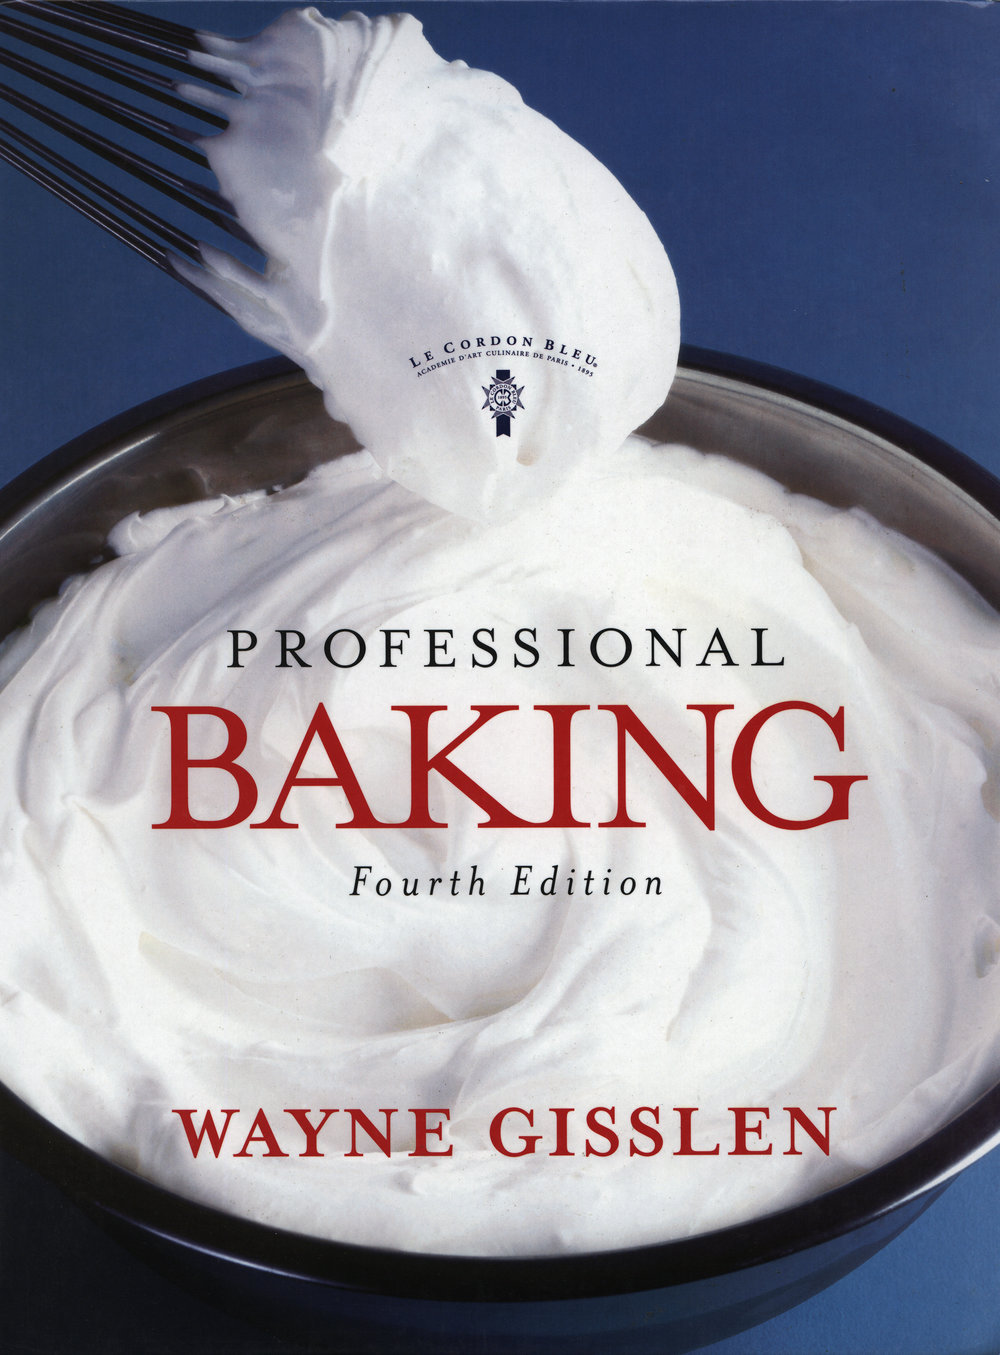 Professional Baking 4th Ed.